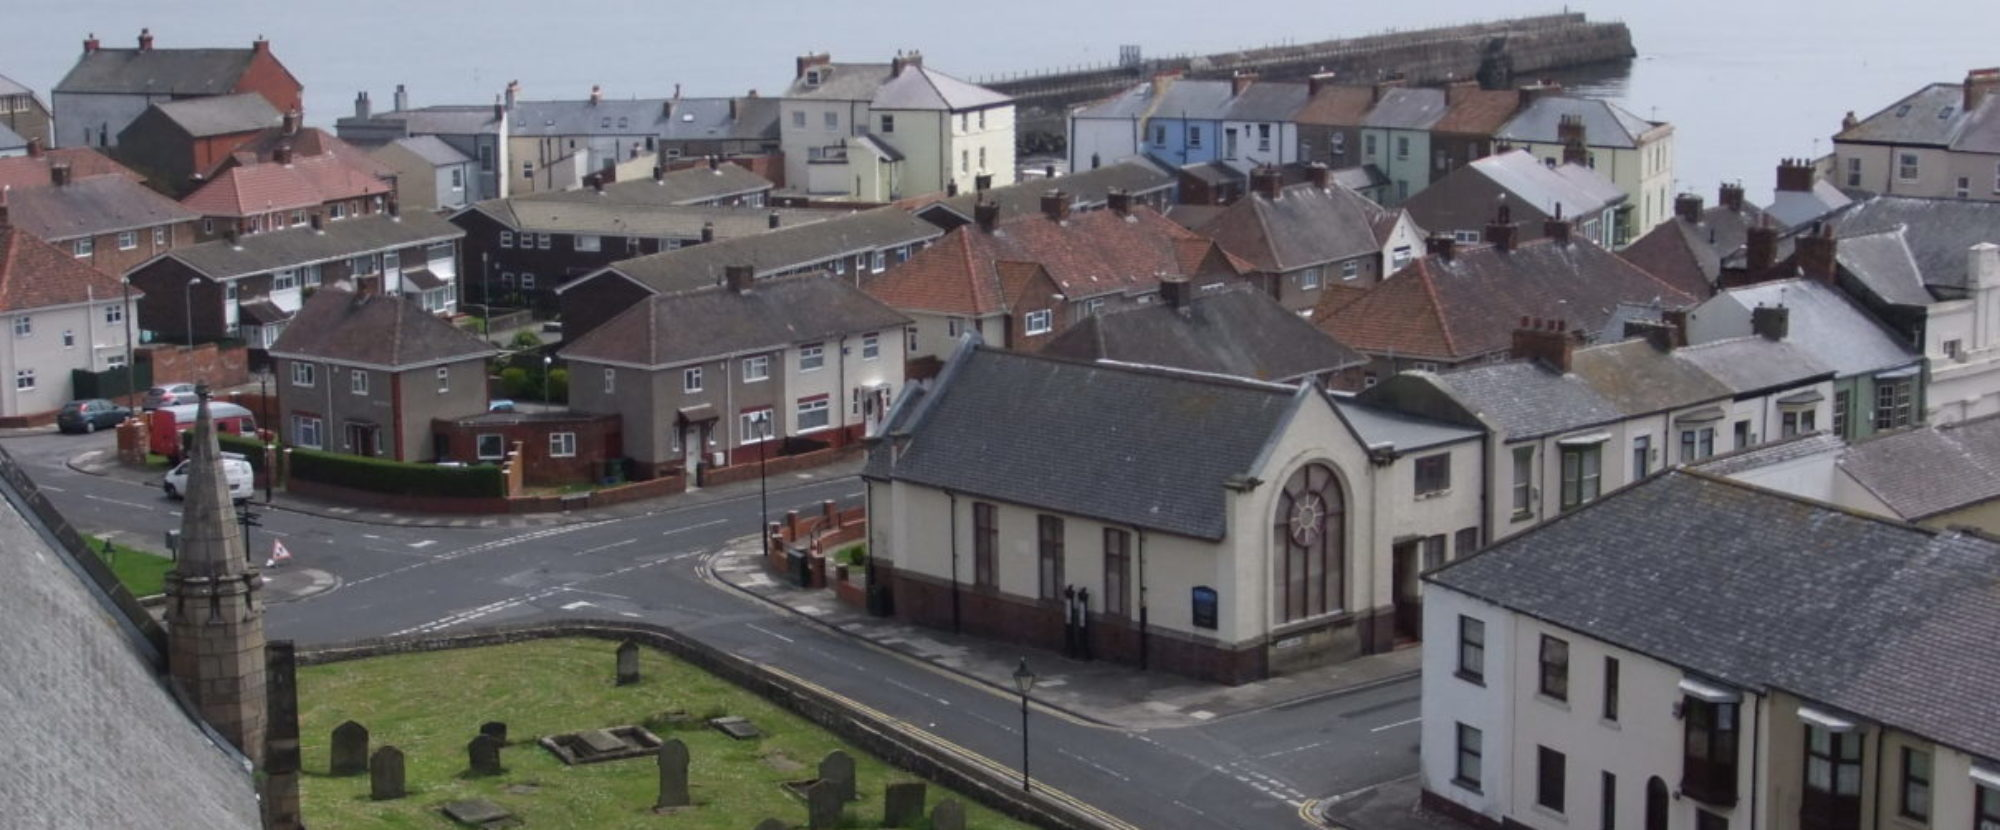 A view from St Hilda's Church Steeple showing the area to the right of the grave yard showing the new Chapel building.